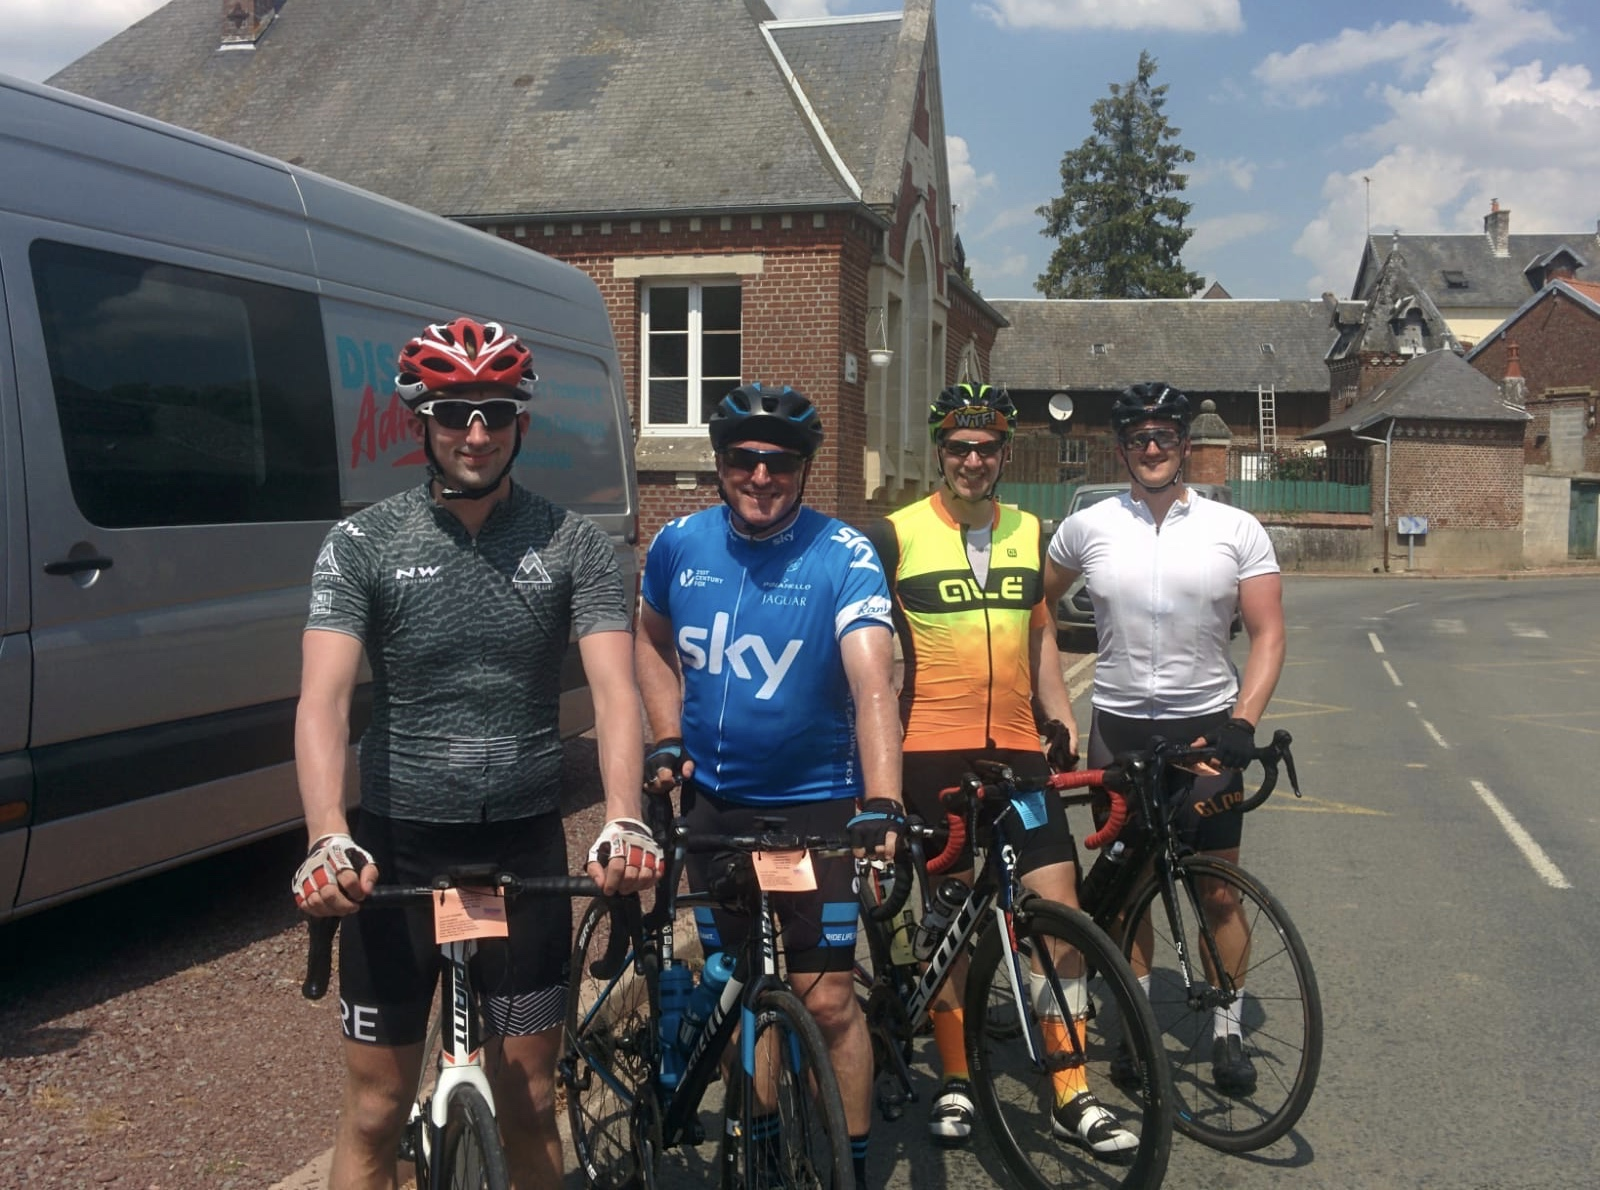 London to Paris Cycle Challenge 2018 - After lunch on day 3